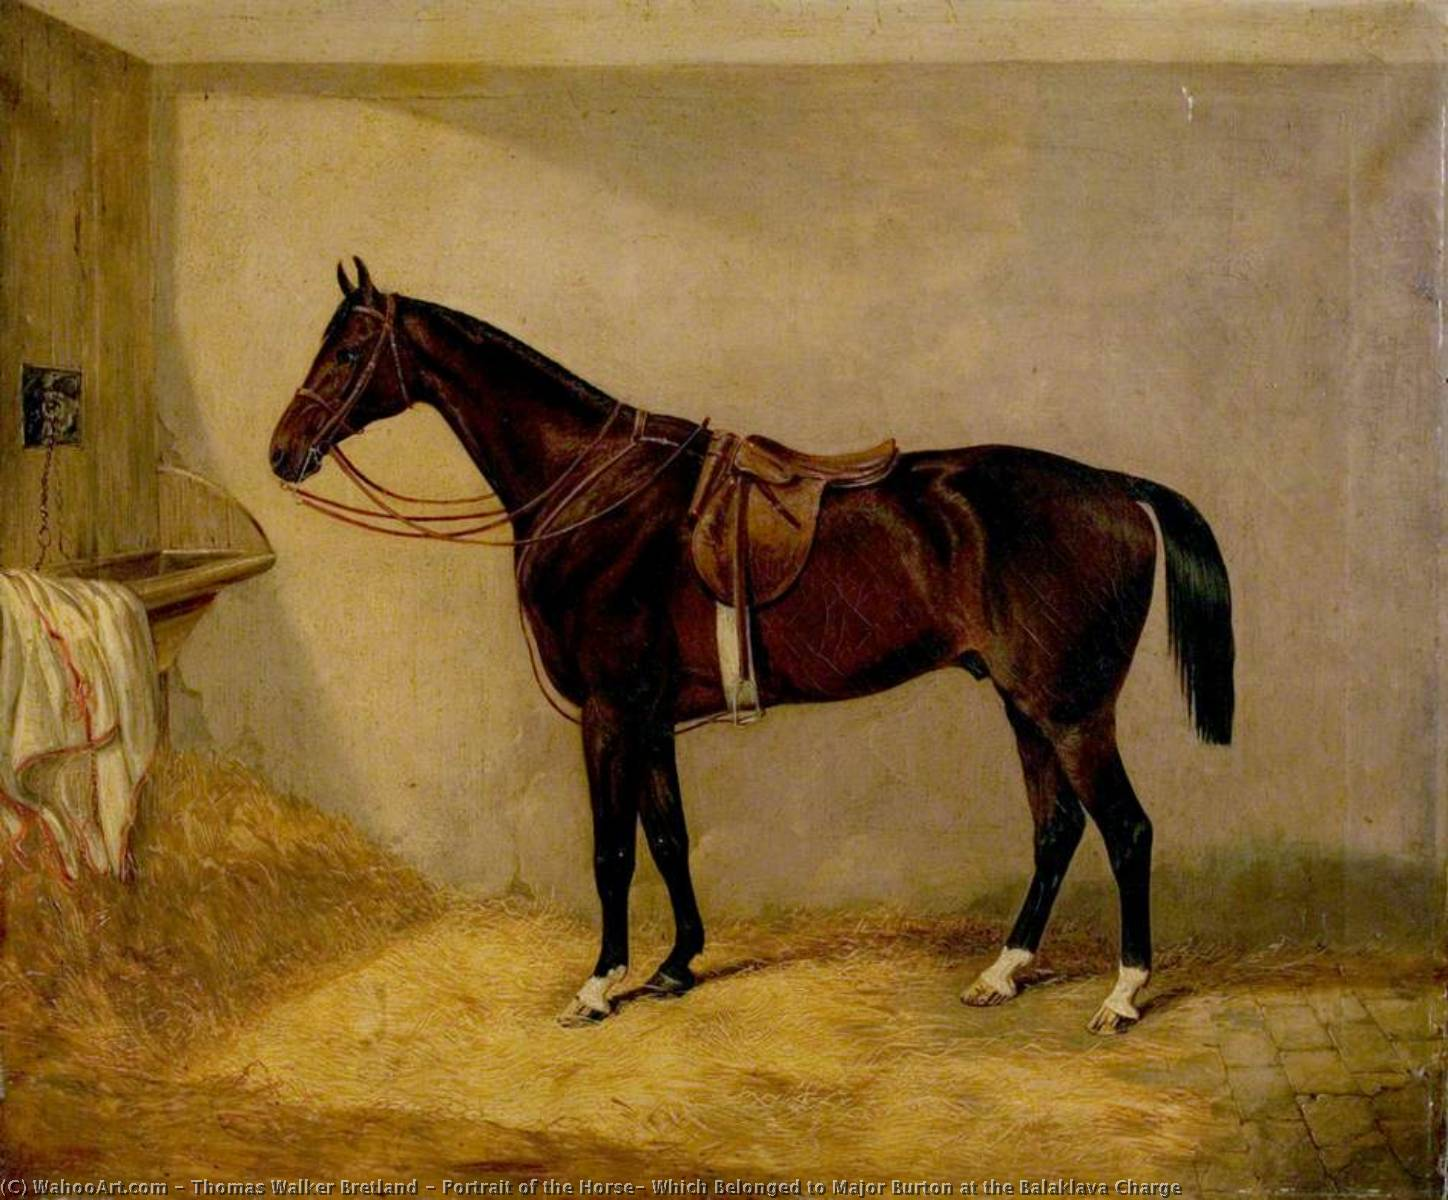 Portrait of the Horse, Which Belonged to Major Burton at the Balaklava Charge by Thomas Walker Bretland | Art Reproduction | WahooArt.com